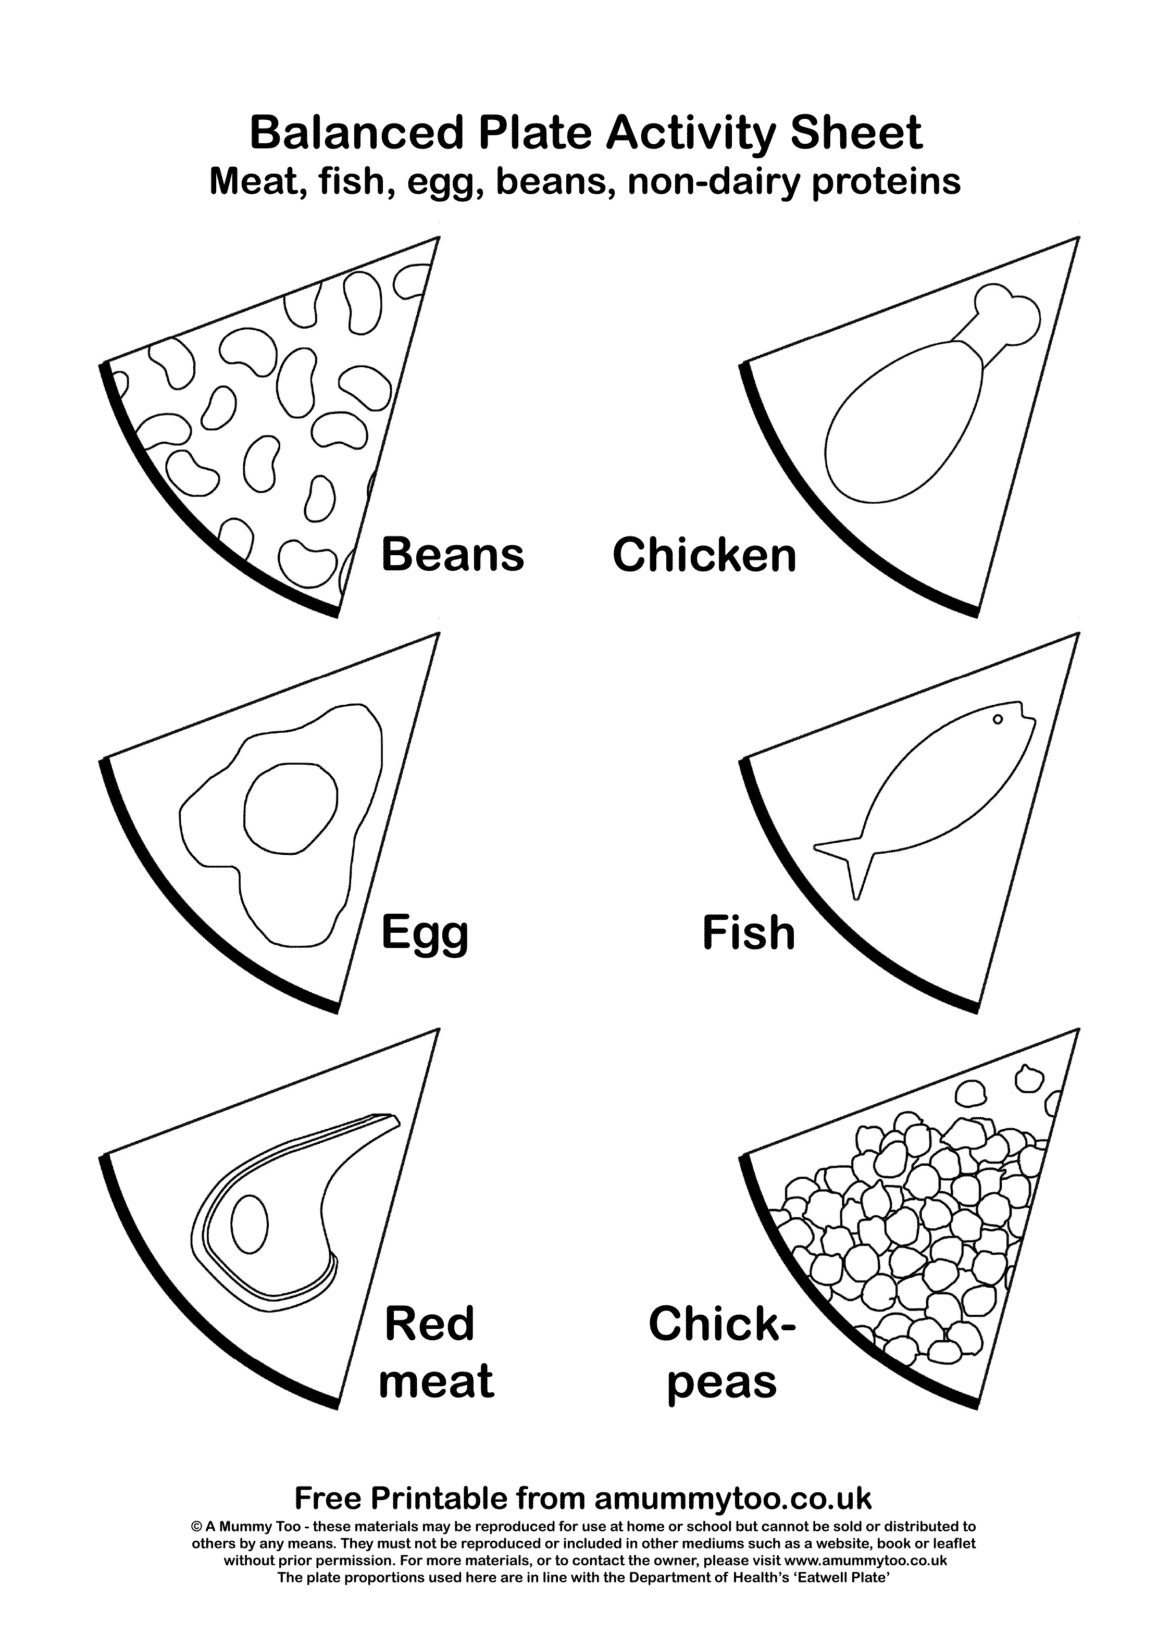 Balanced plate black and white activity sheet that demonstrates protiens such as beans, chicken, egg and fish.